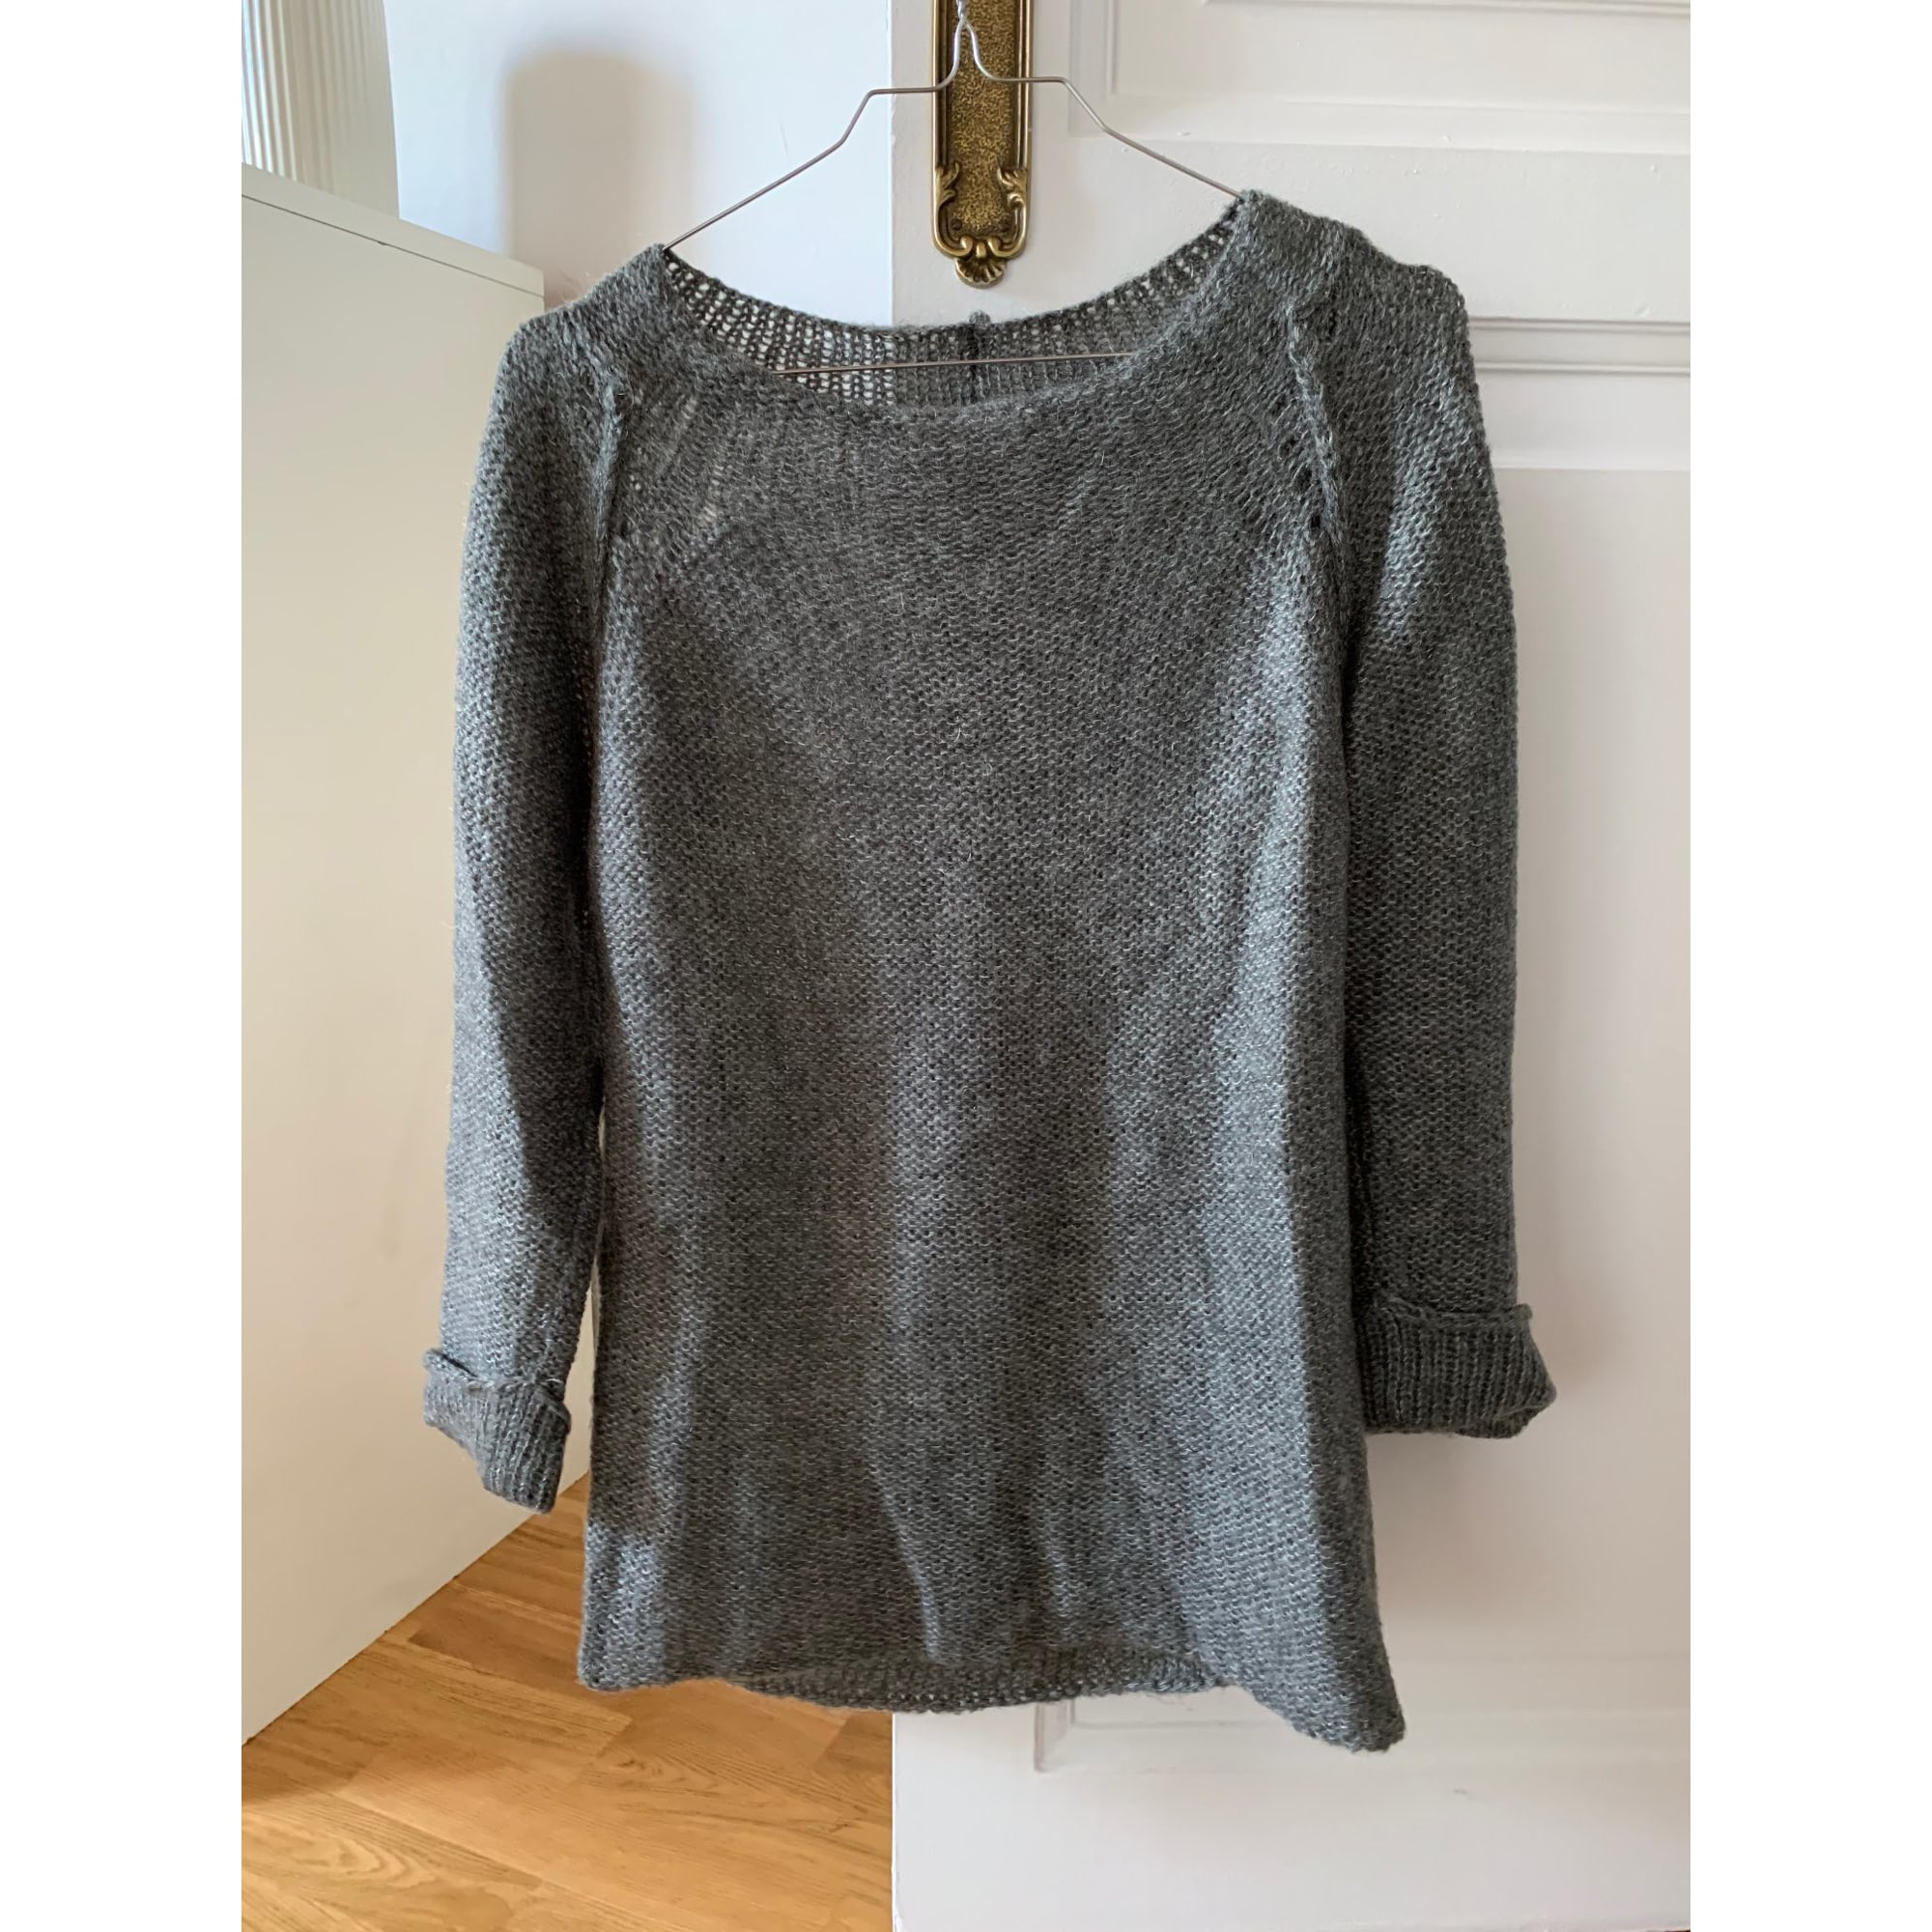 Pull BY ZOE Gris, anthracite